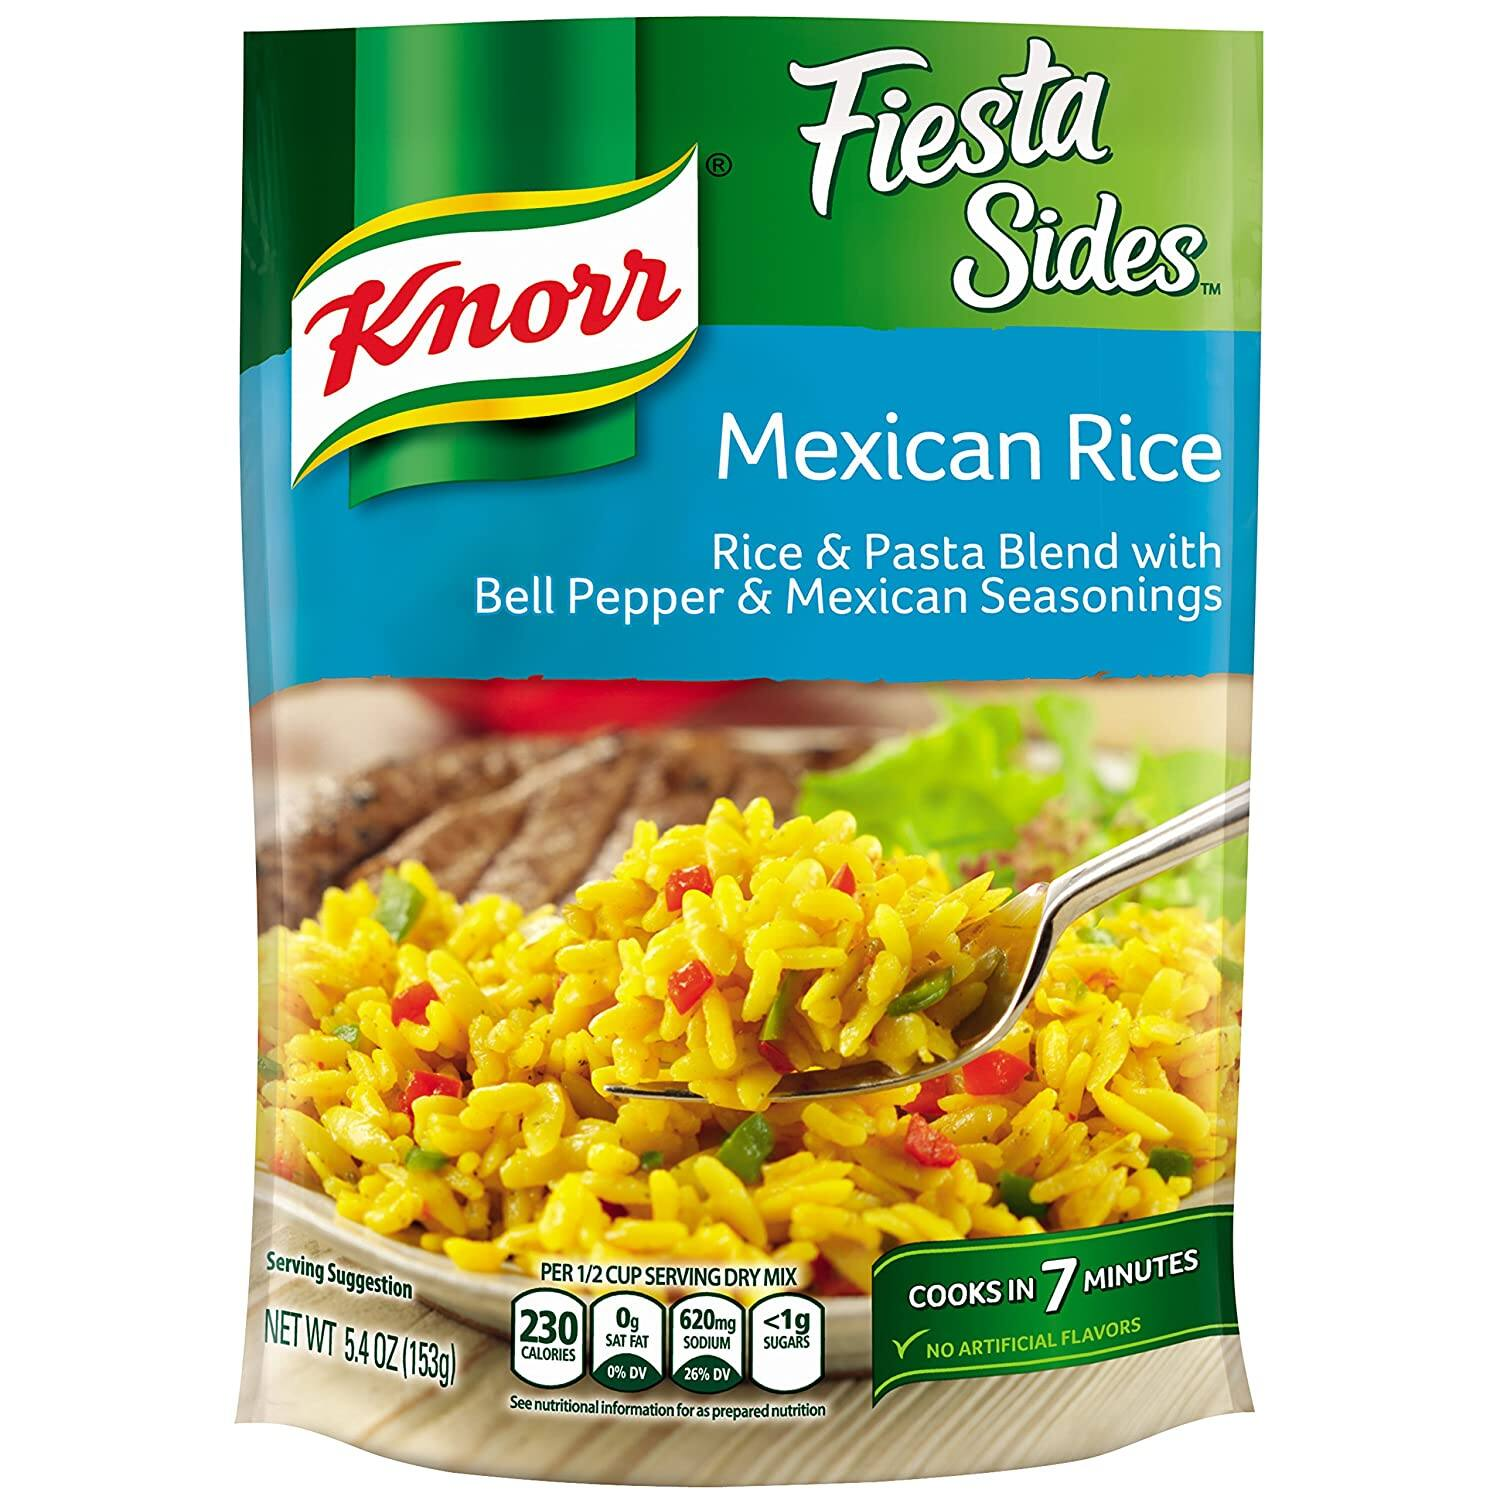 Knorr Fiesta Sides Rice Side Dish, Mexican Rice, 5.4 Ounce, (Pack of 8) $7.52